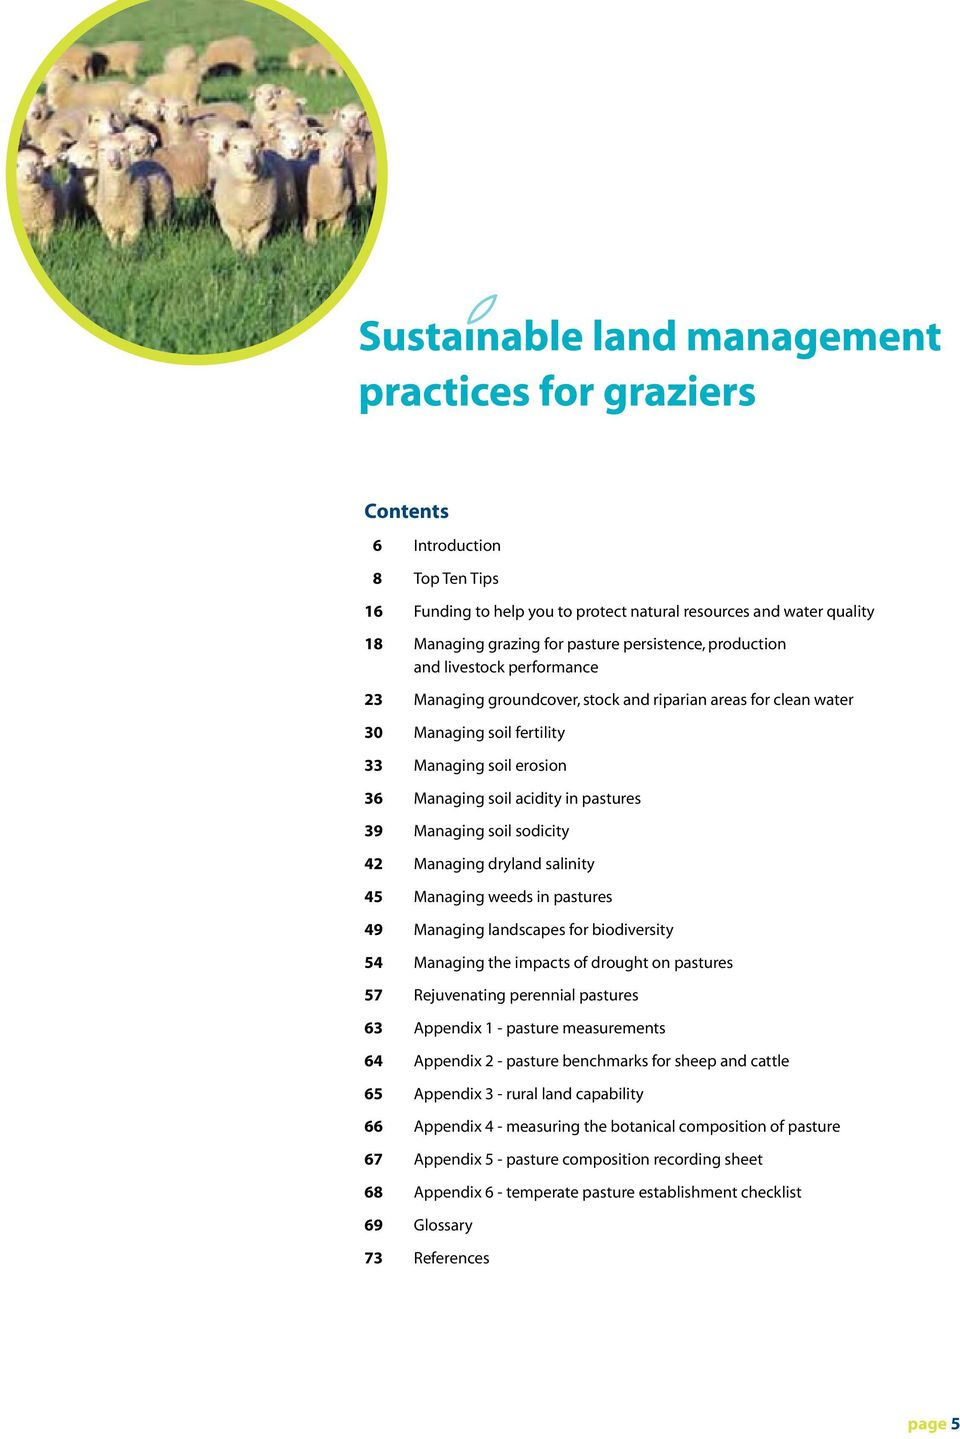 salinity 45 Managing weeds in pastures 49 Managing landscapes for biodiversity 54 Managing the impacts of drought on pastures 57 Rejuvenating perennial pastures 63 Appendix 1 - pasture measurements